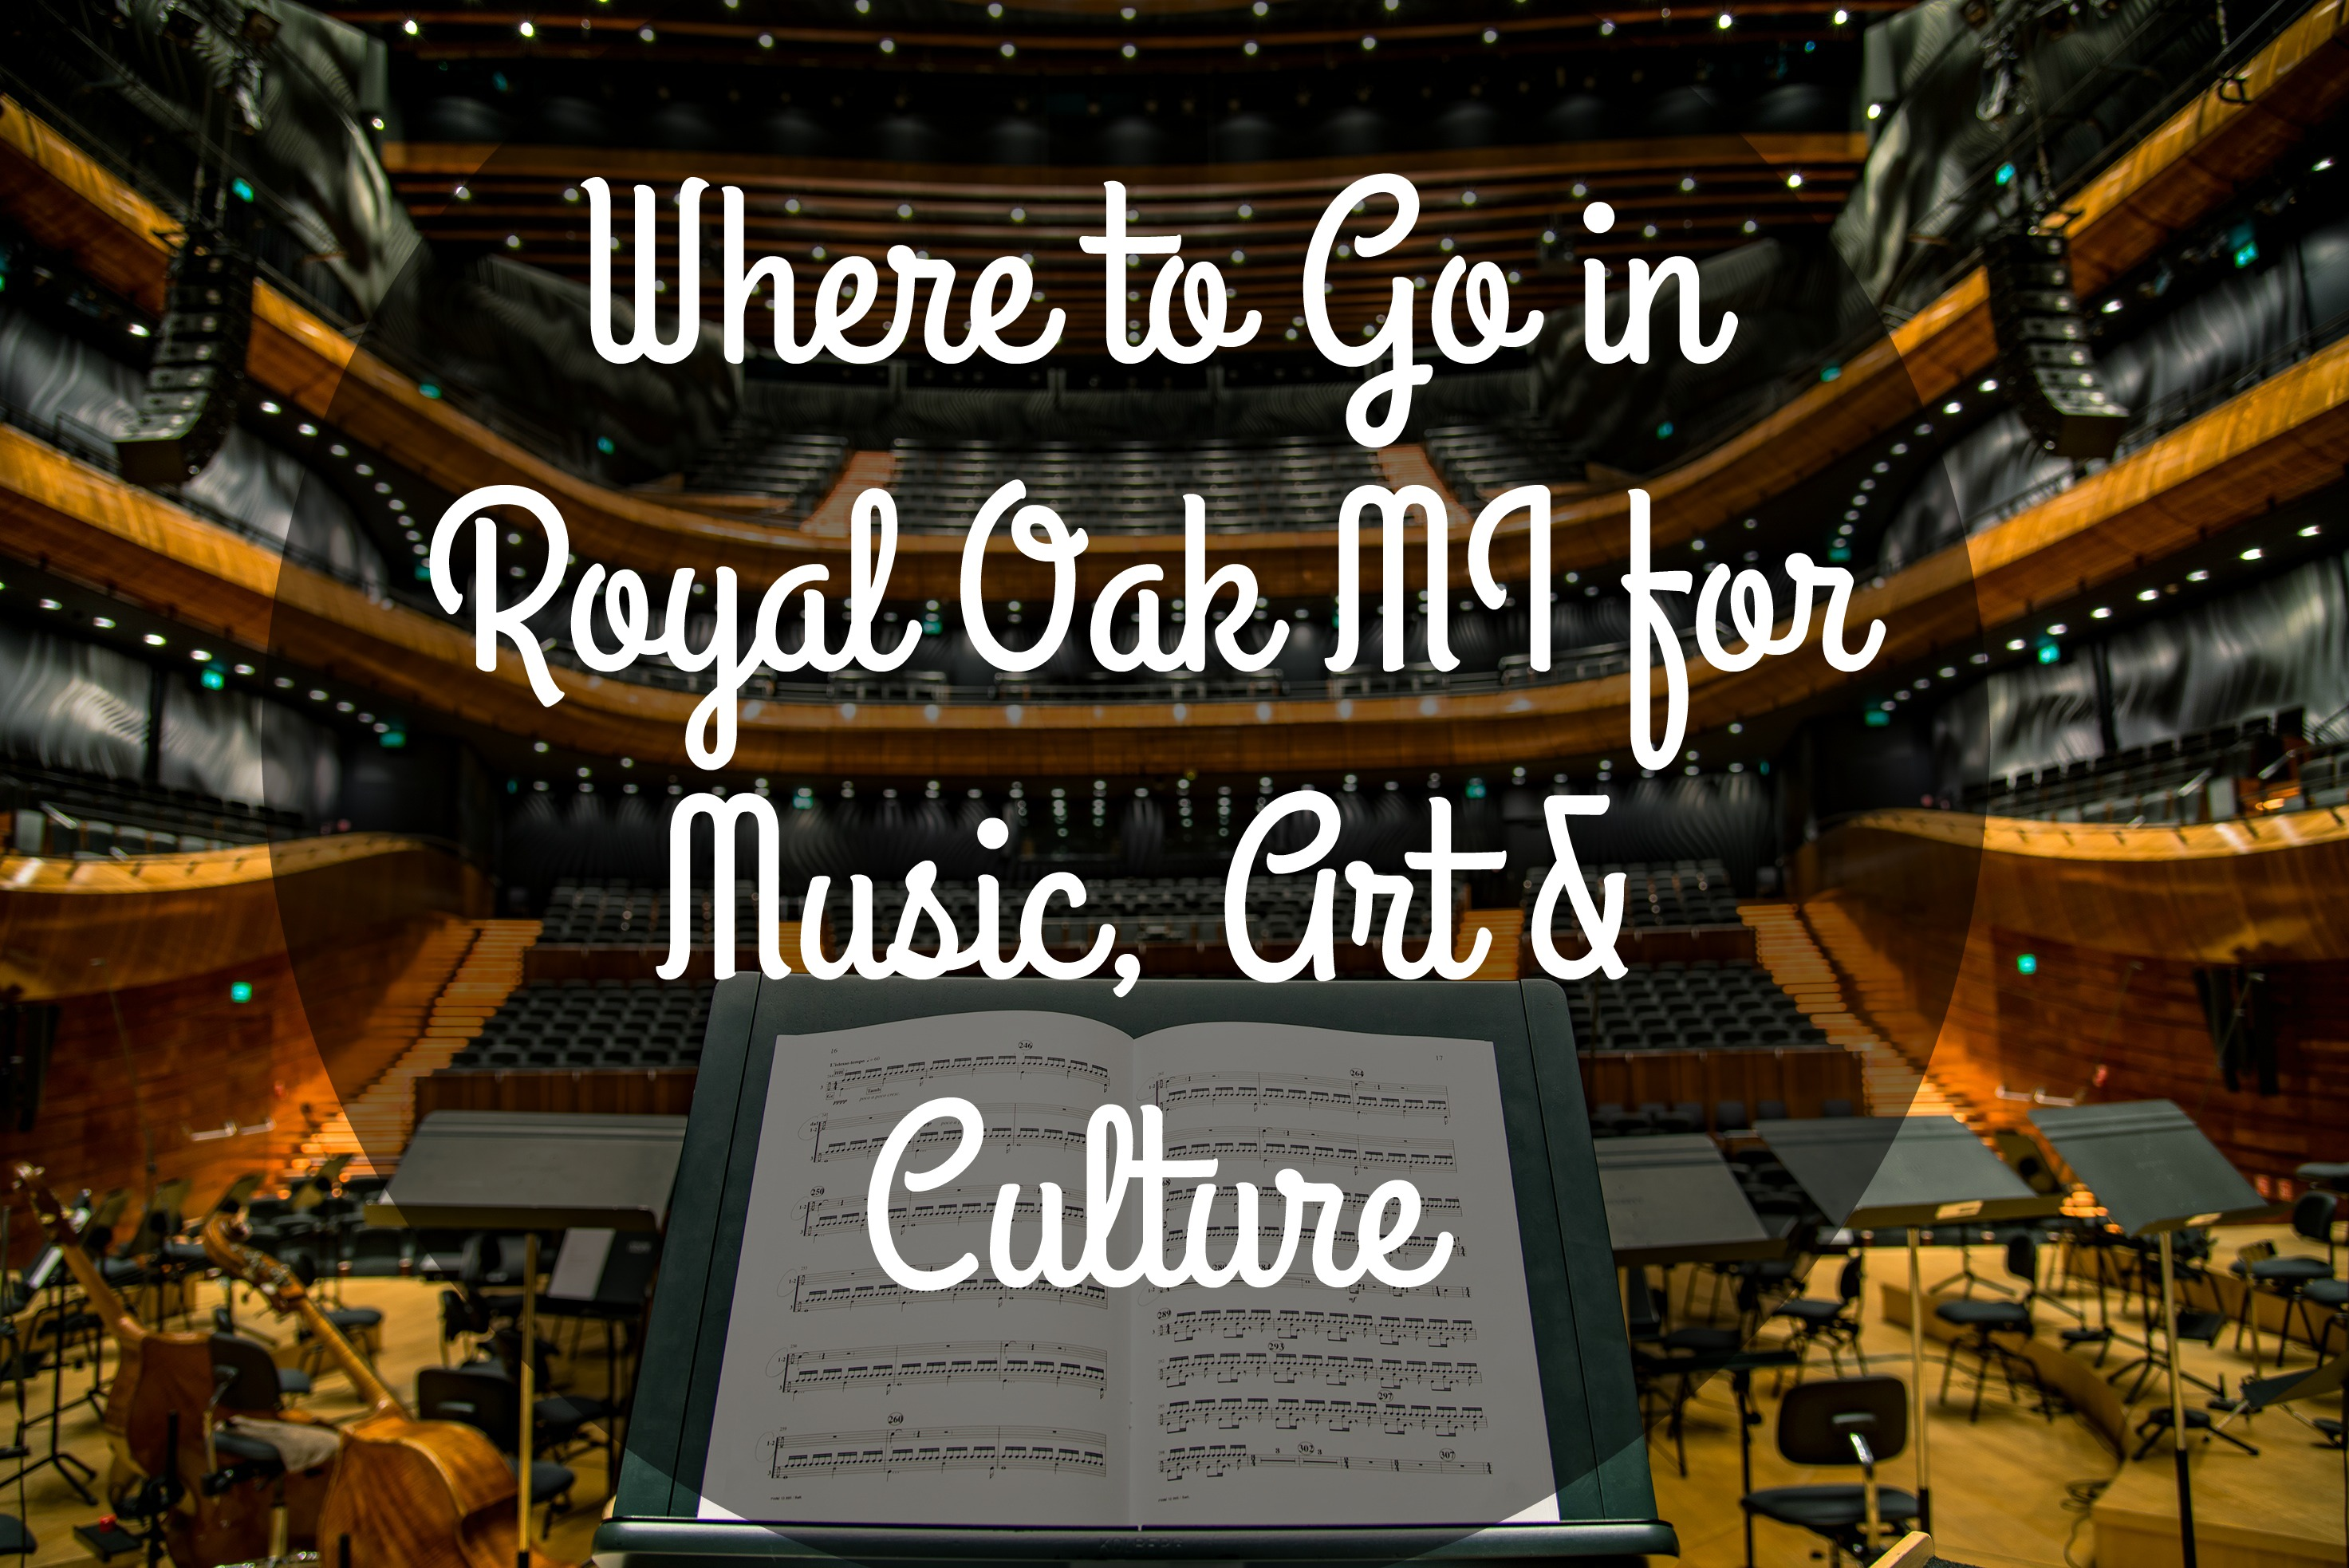 Music and Culture...?